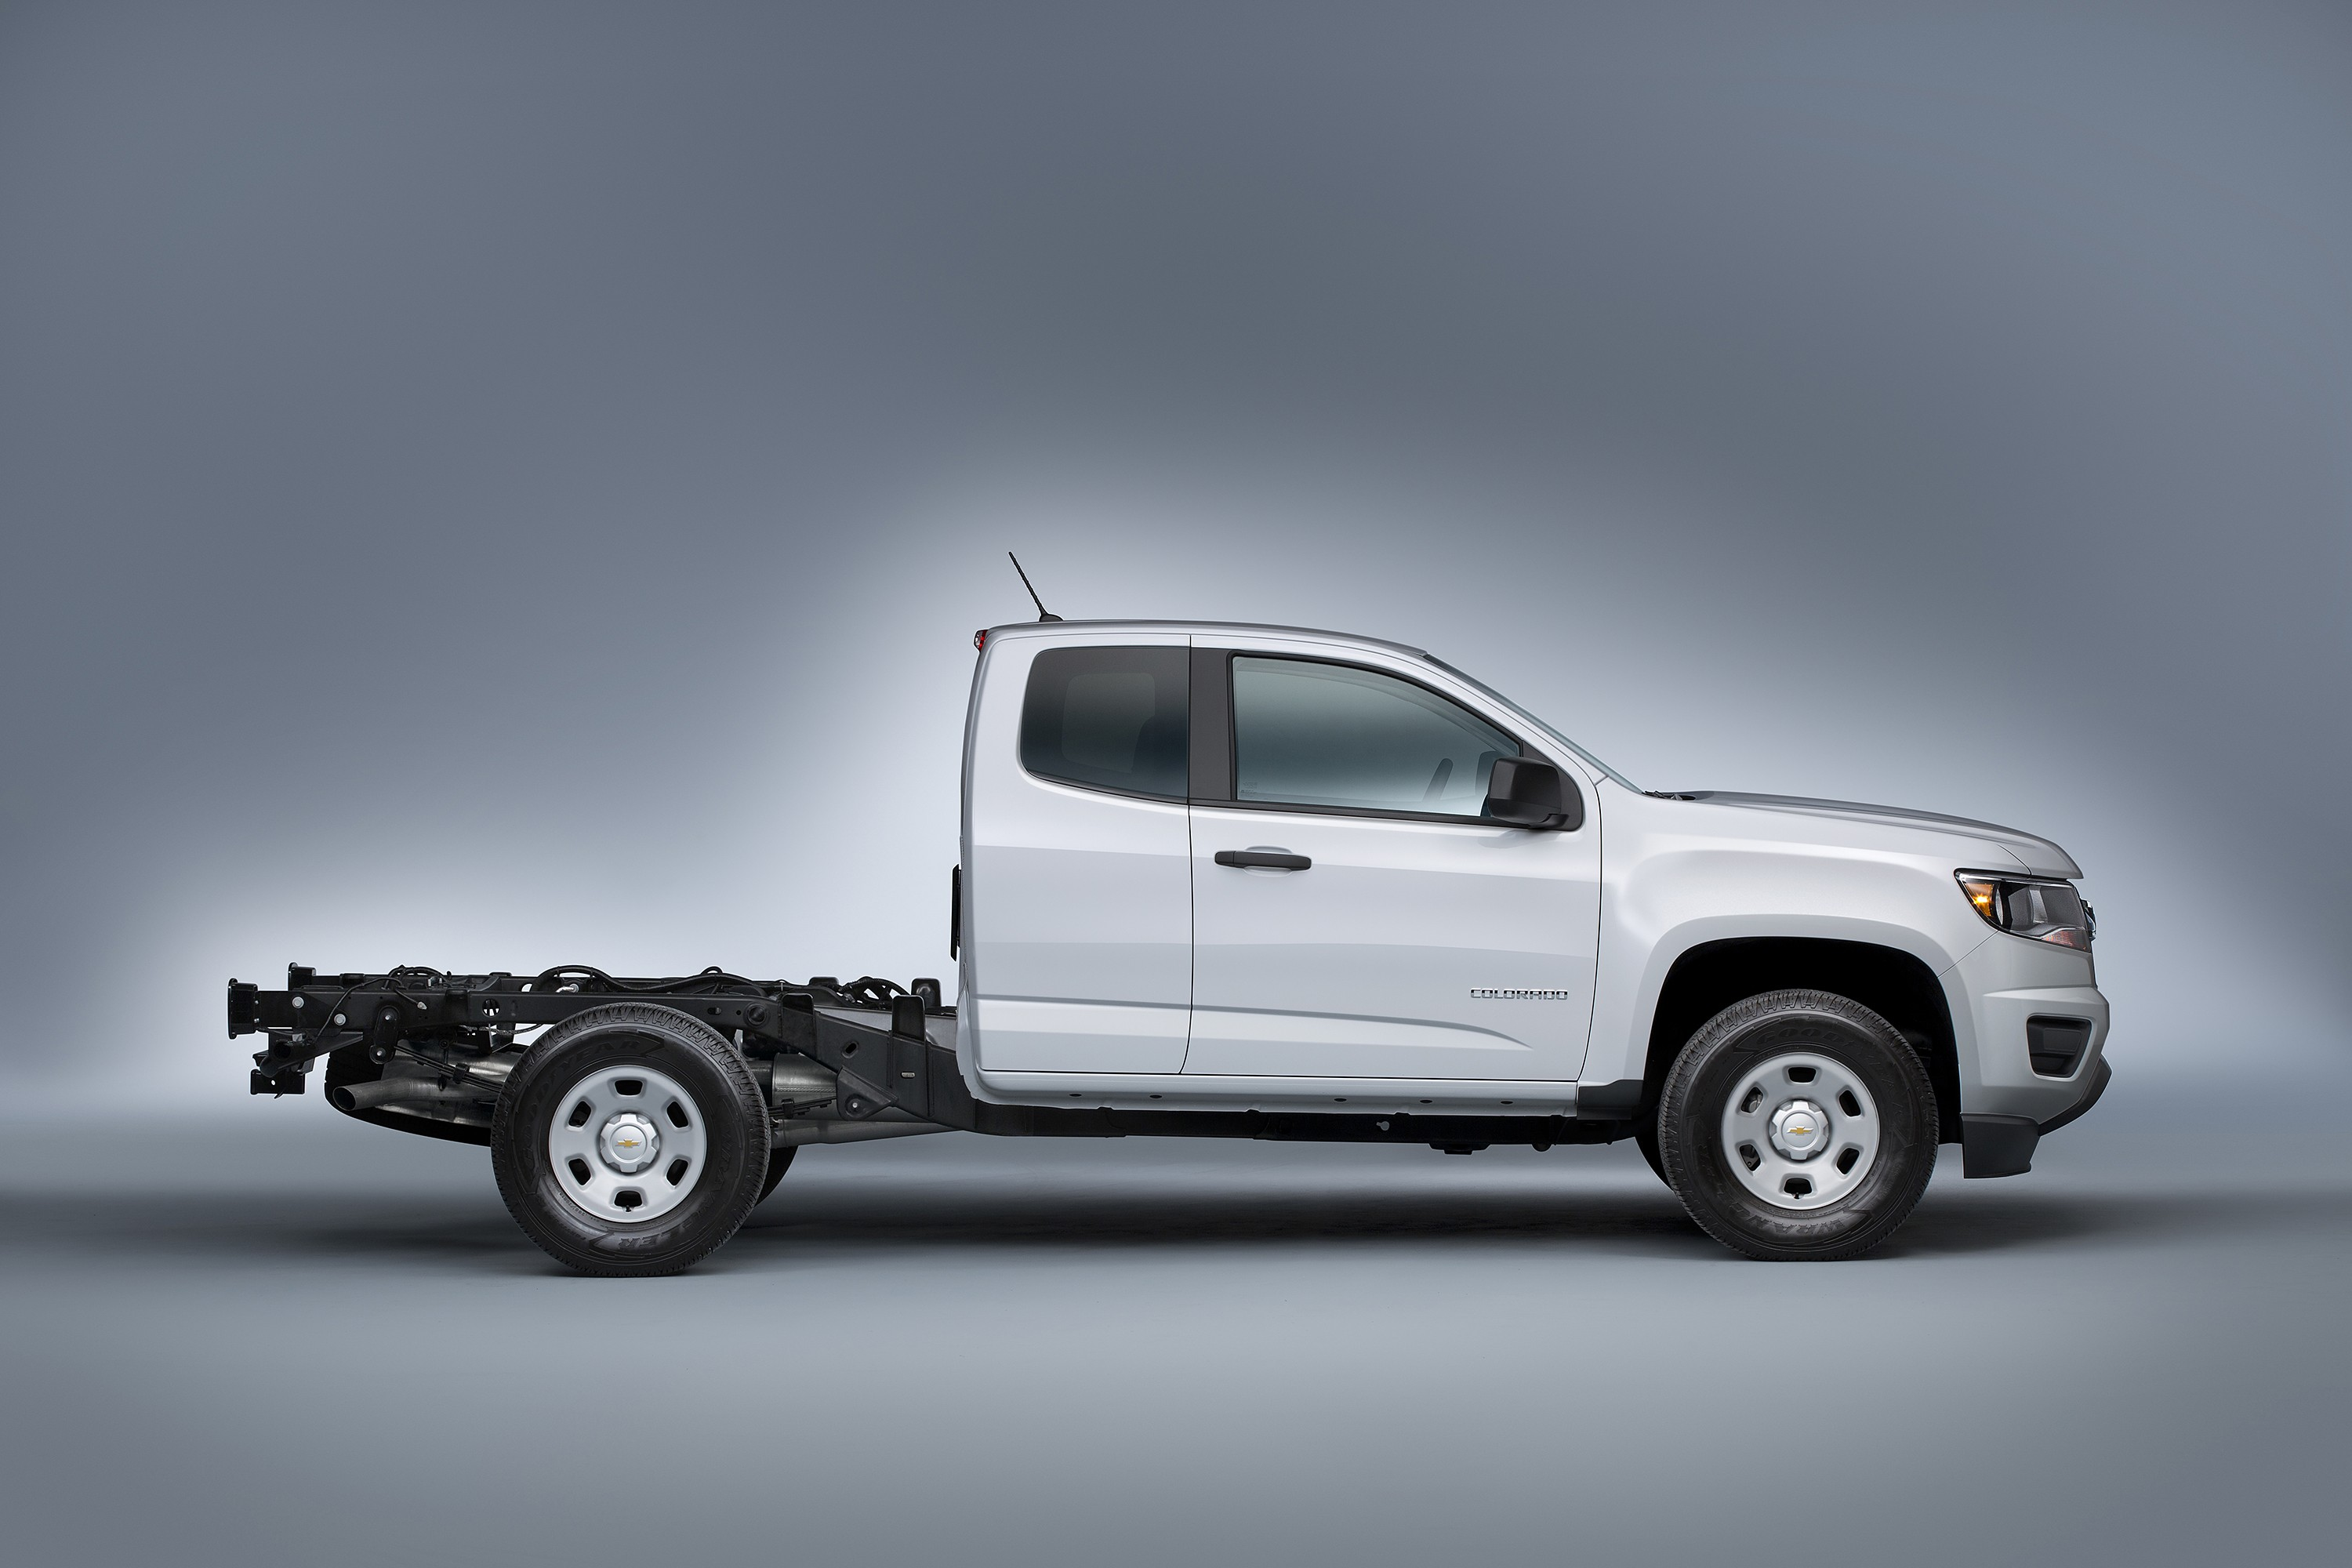 Box Delete Option Now Offered by General Motors on Half-Ton